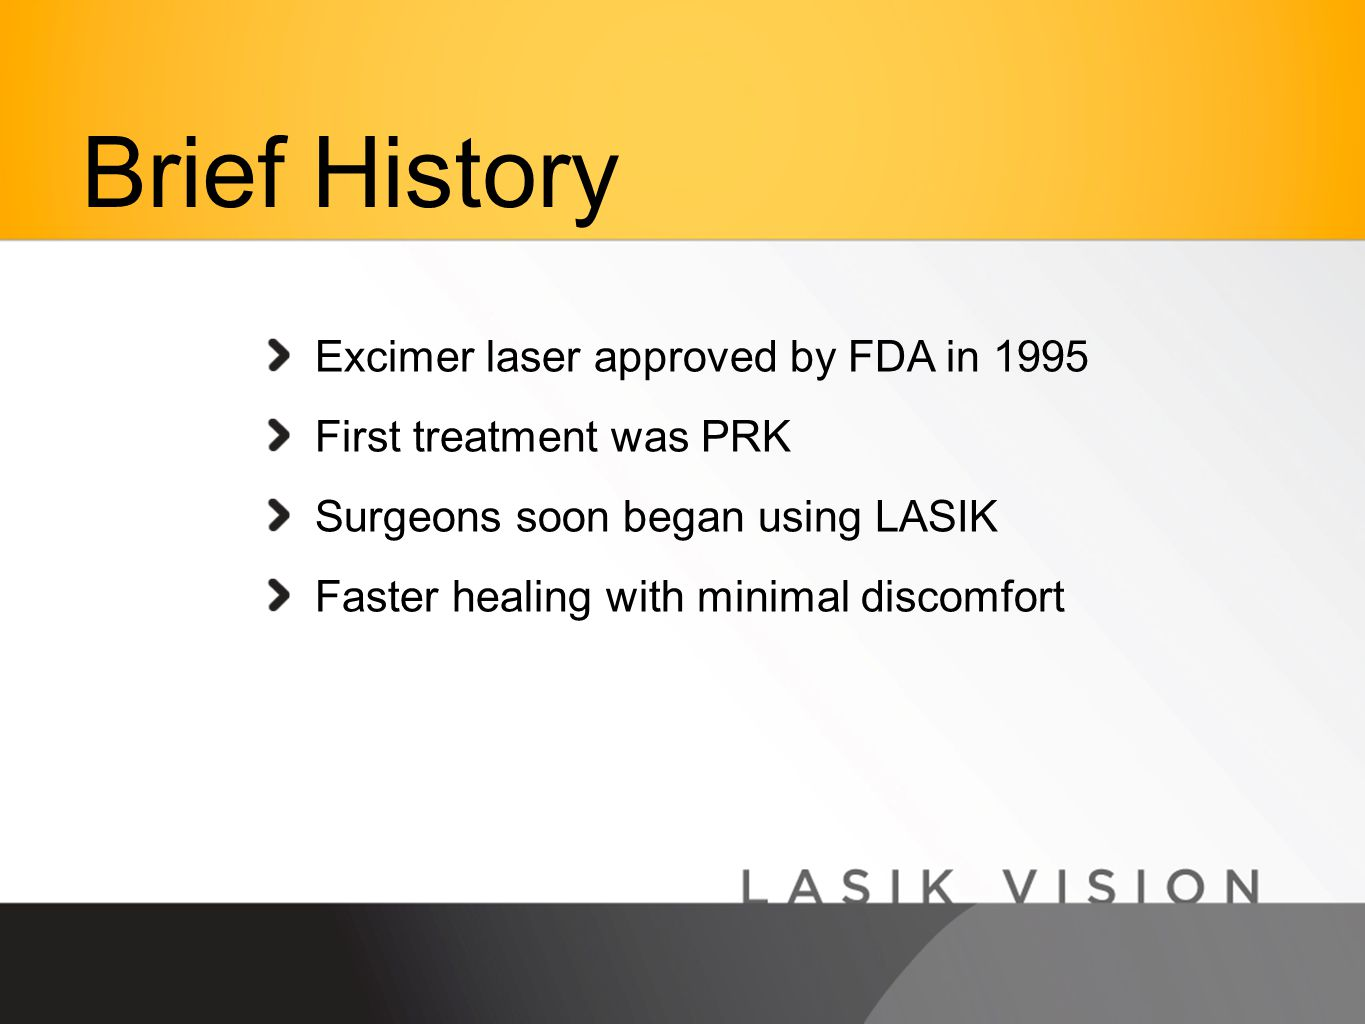 Excimer laser approved by FDA in 1995 First treatment was PRK Surgeons soon began using LASIK Faster healing with minimal discomfort Brief History